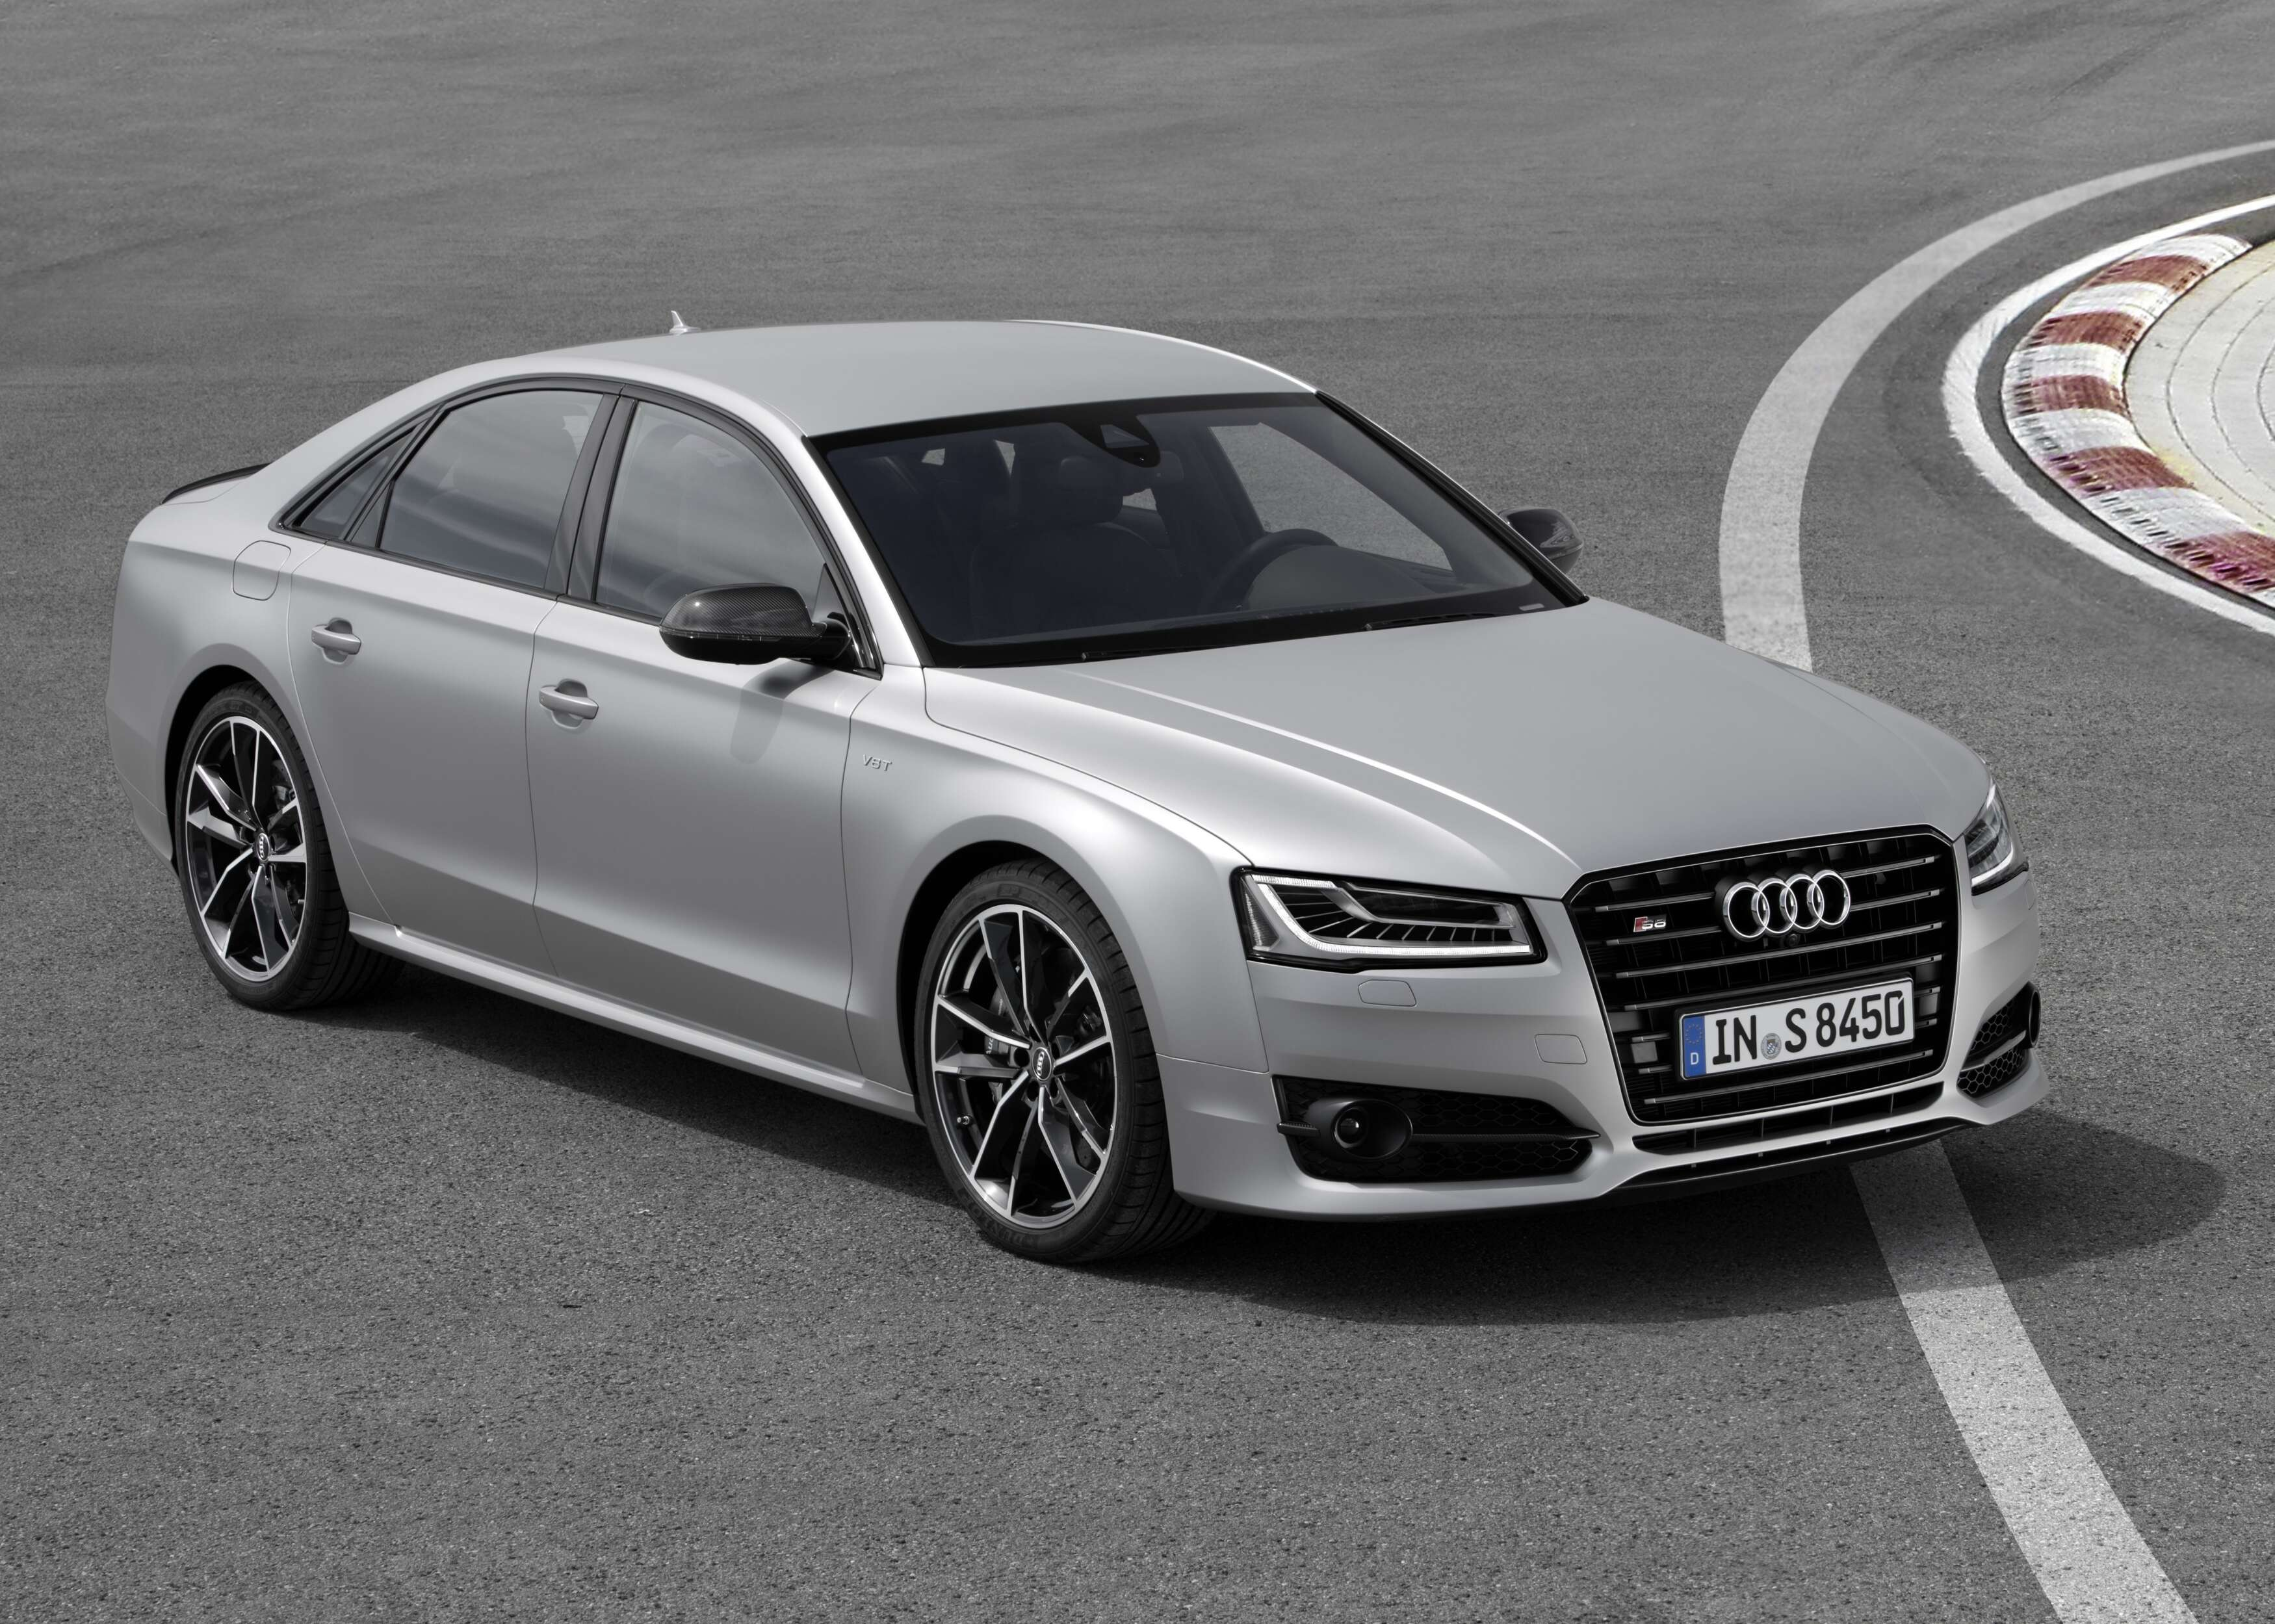 Audi S Plus Romps With The Worlds Fastest FourDoors The Drive - Audi car 4 door